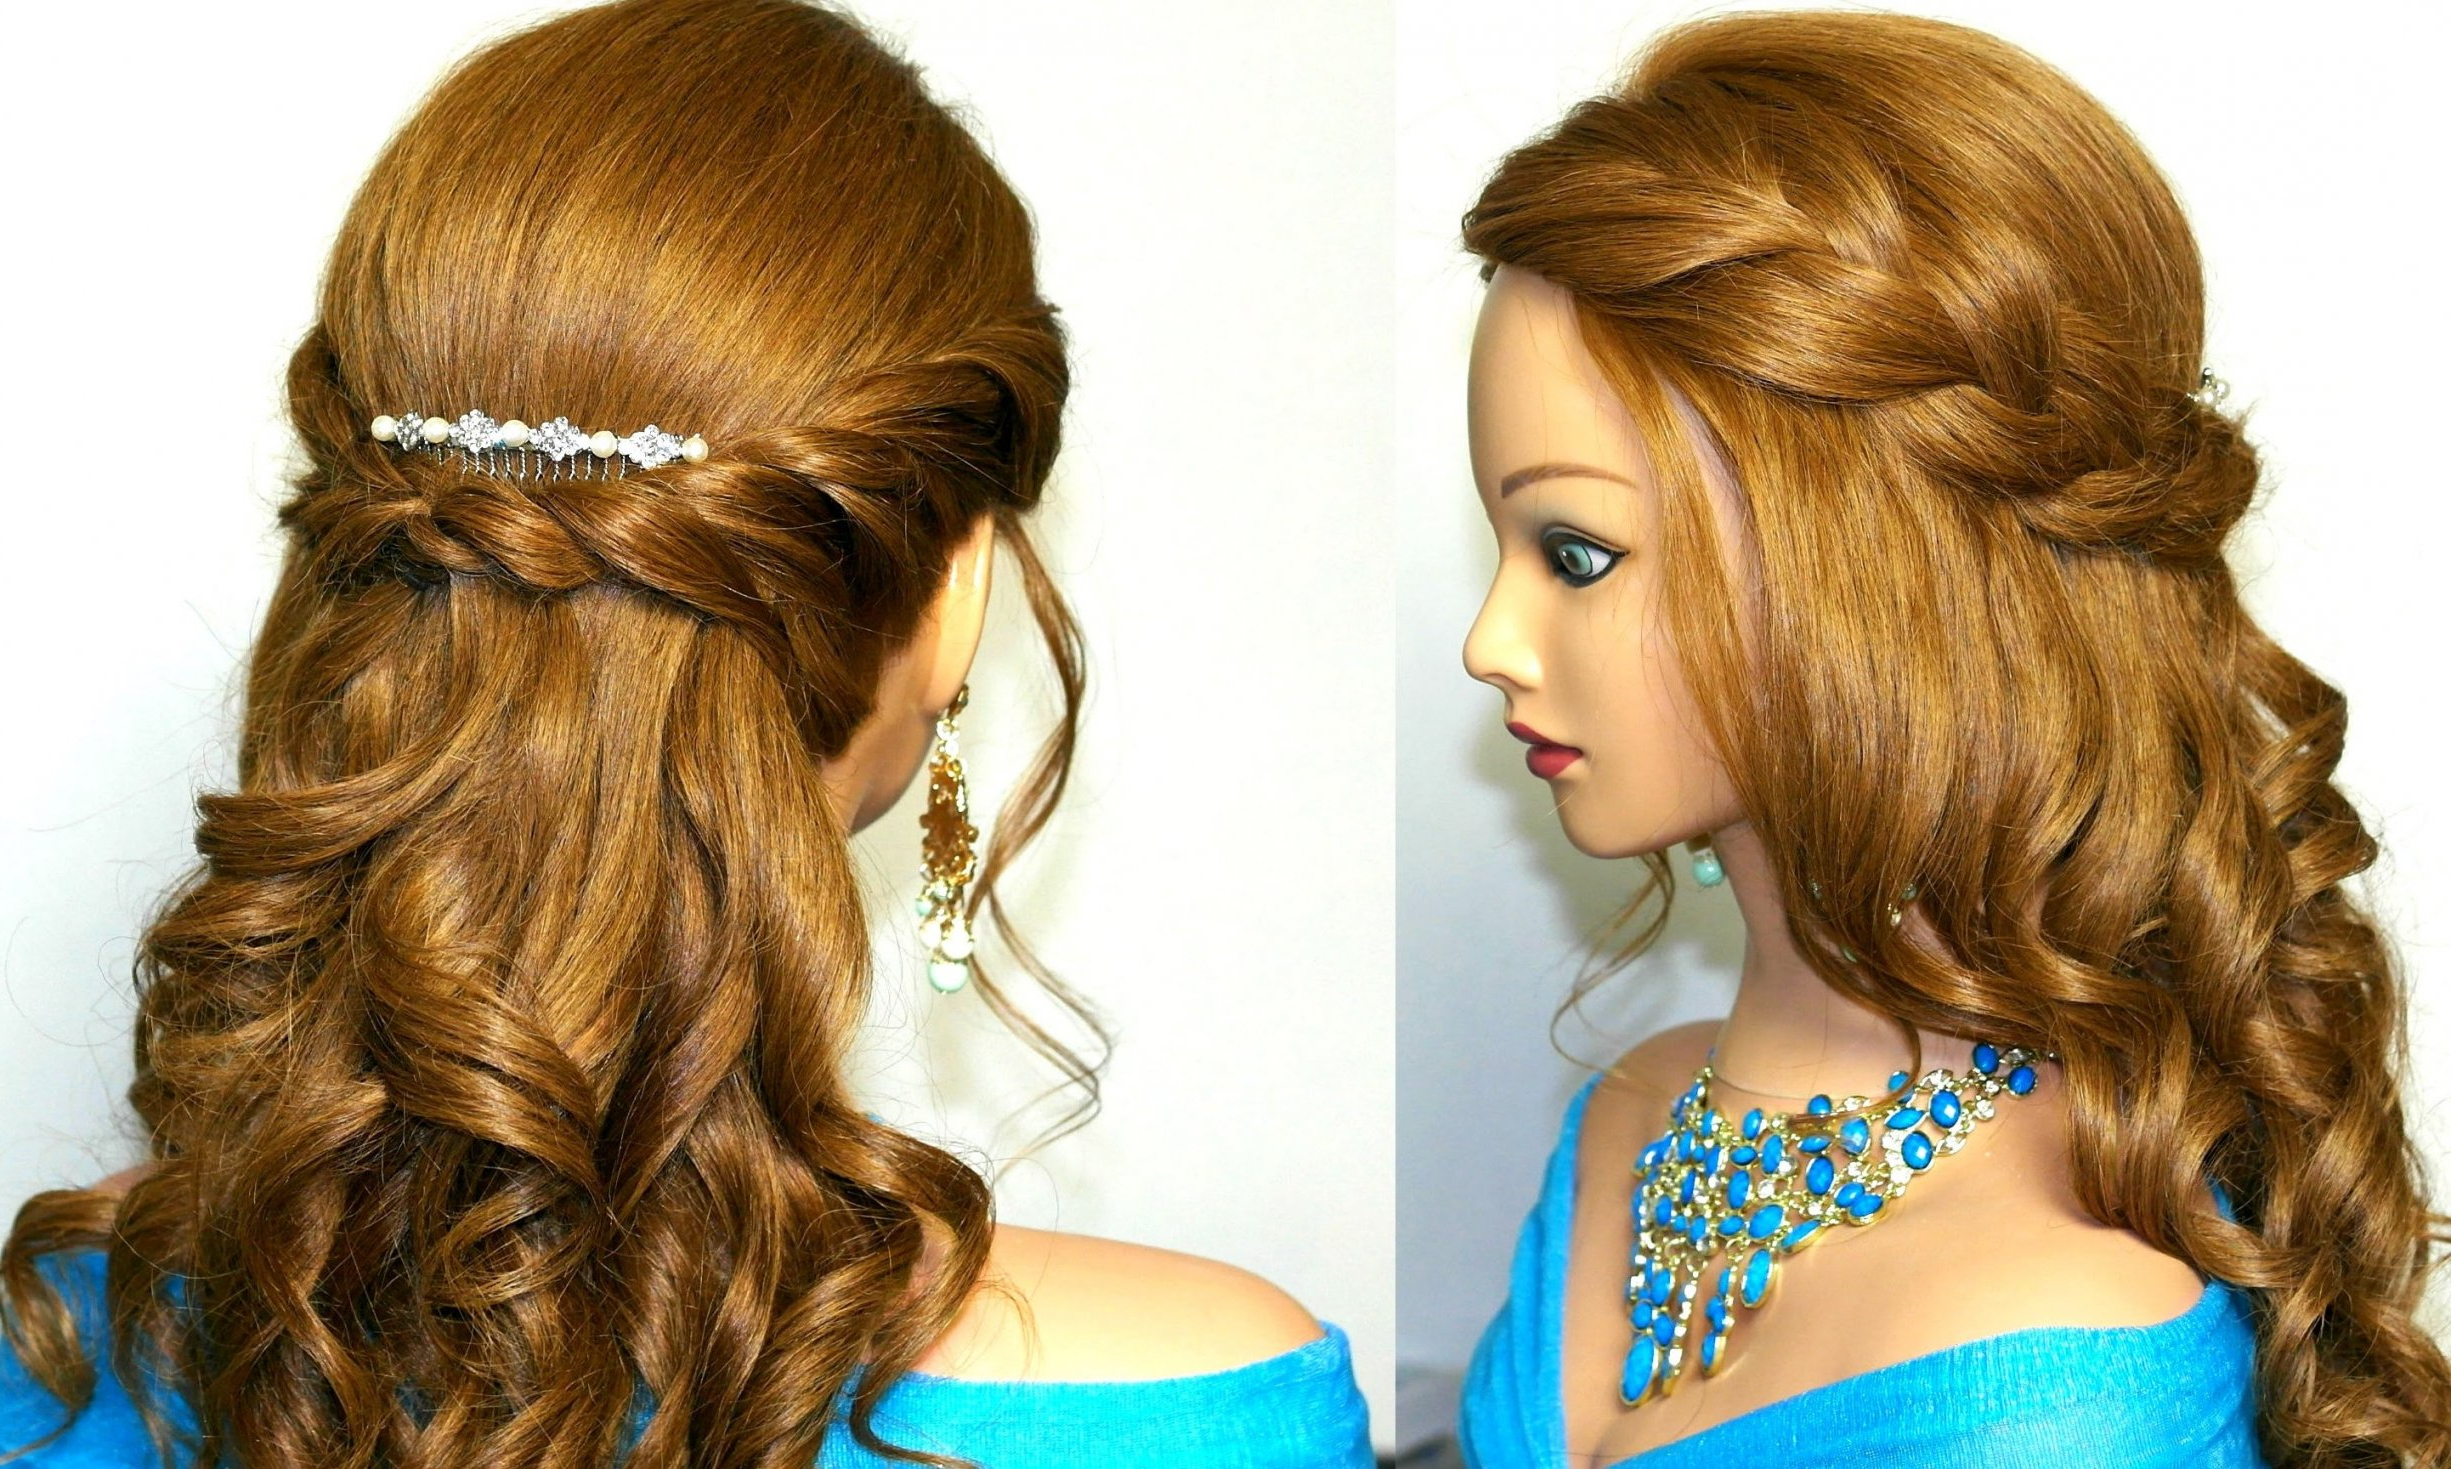 Long Curly Hairstyles Prom » Best Hairstyles & Haircuts For All Hair Inside Well Liked Curly Medium Hairstyles For Prom (View 11 of 20)